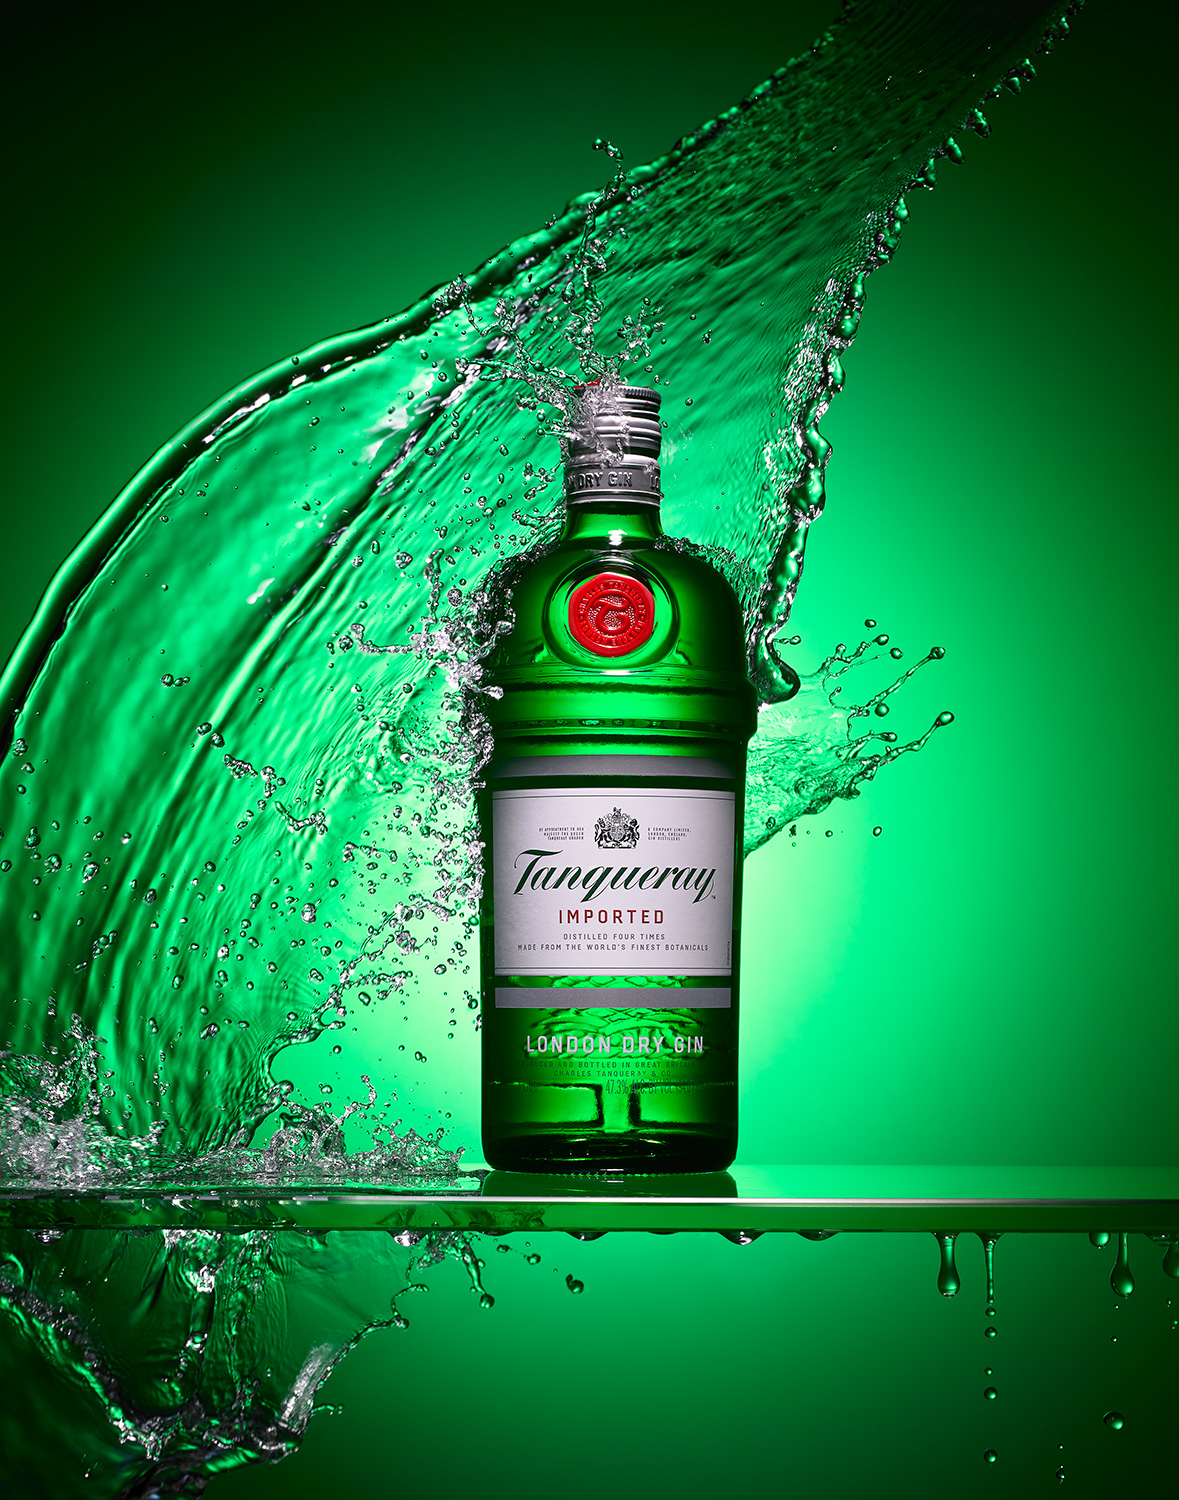 18-03-12_Tanqueray_bottle